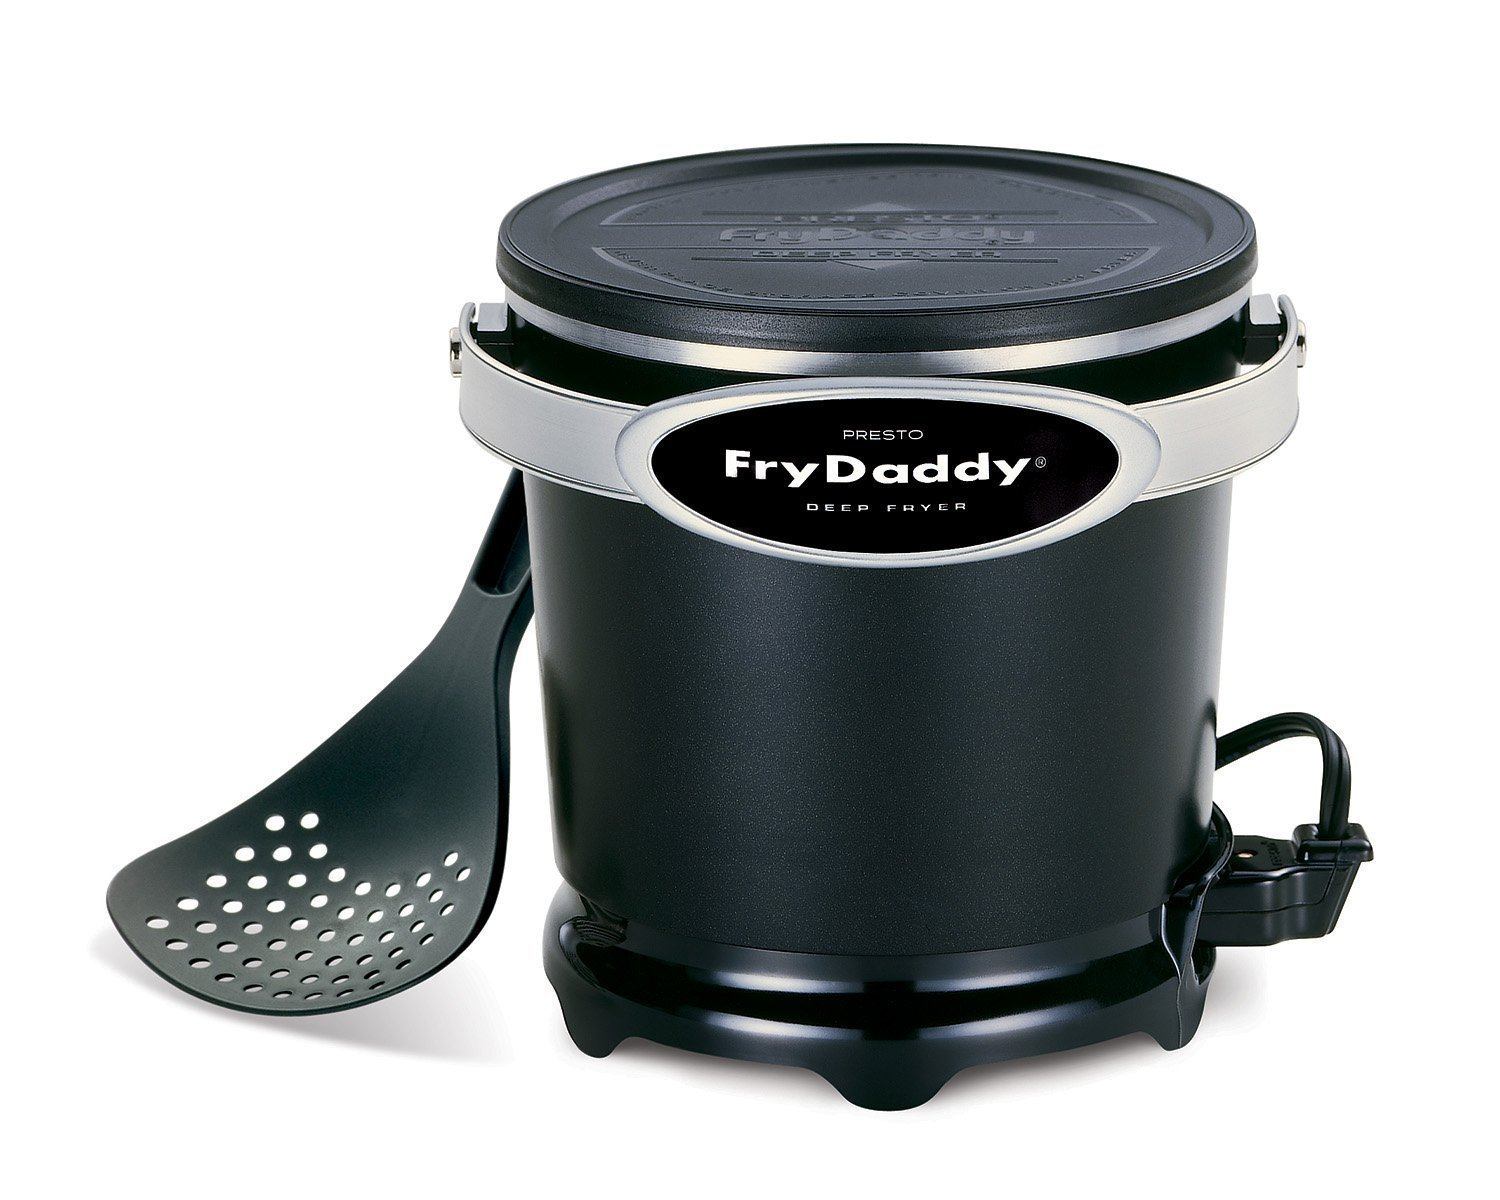 Presto Fry Daddy 4-Cup Electric Deep Fryer